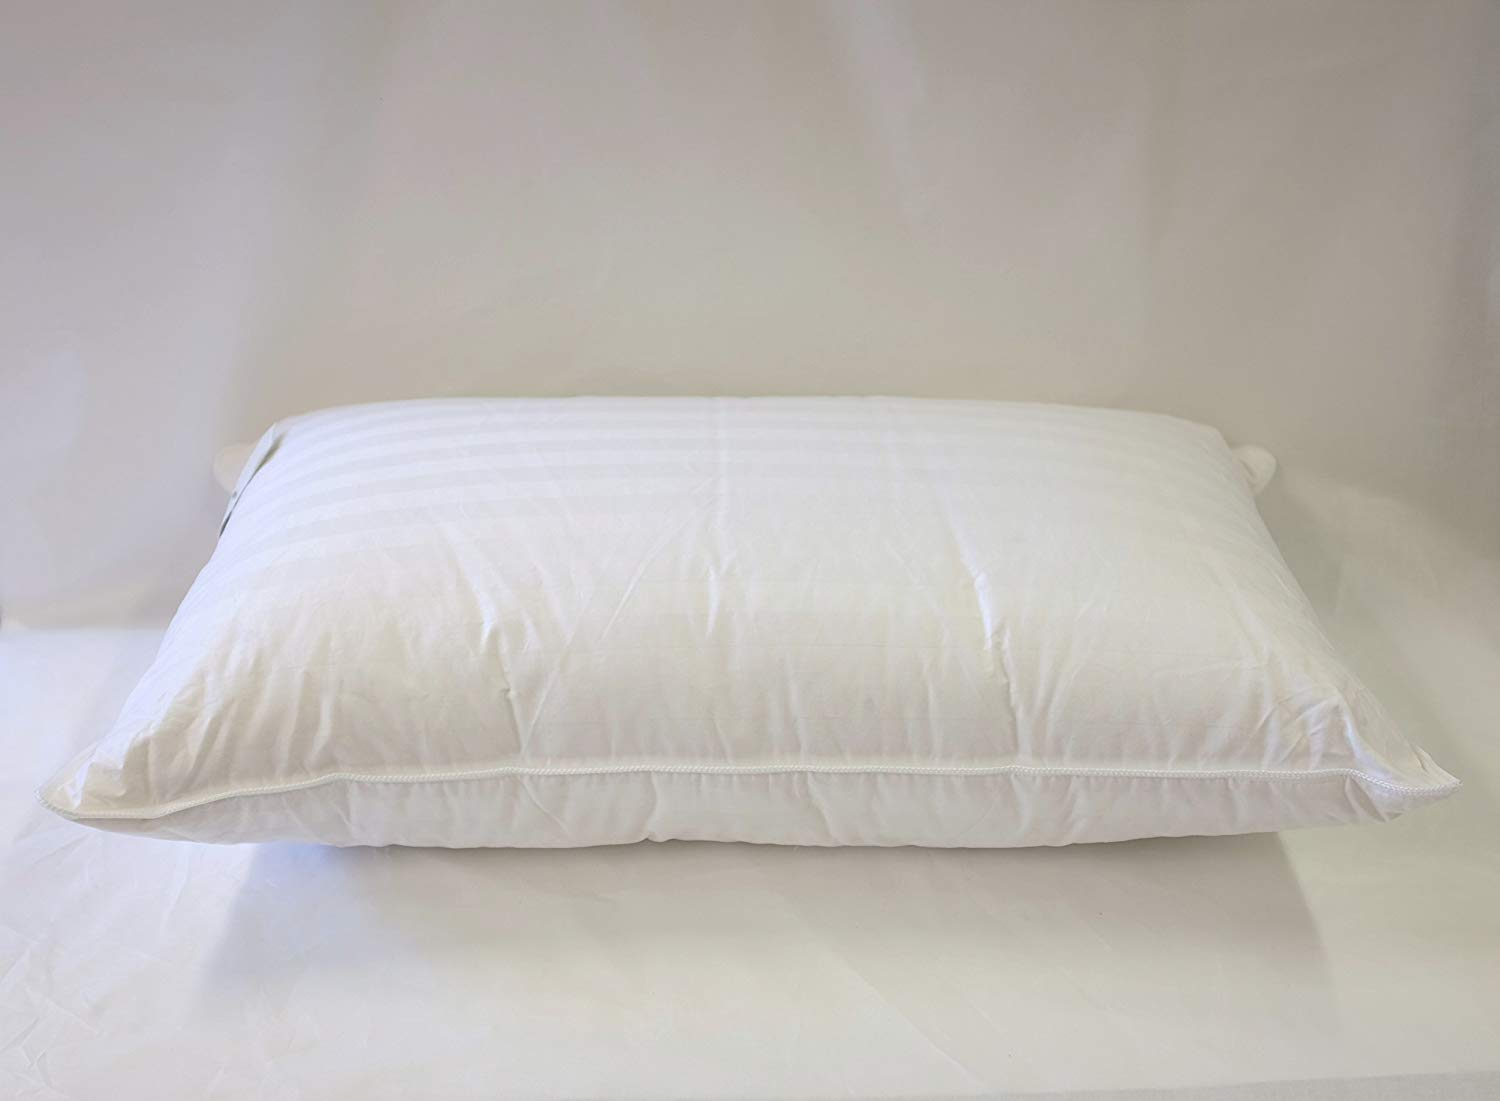 Continental Bedding best feather pillows review by www.dailysleep.org